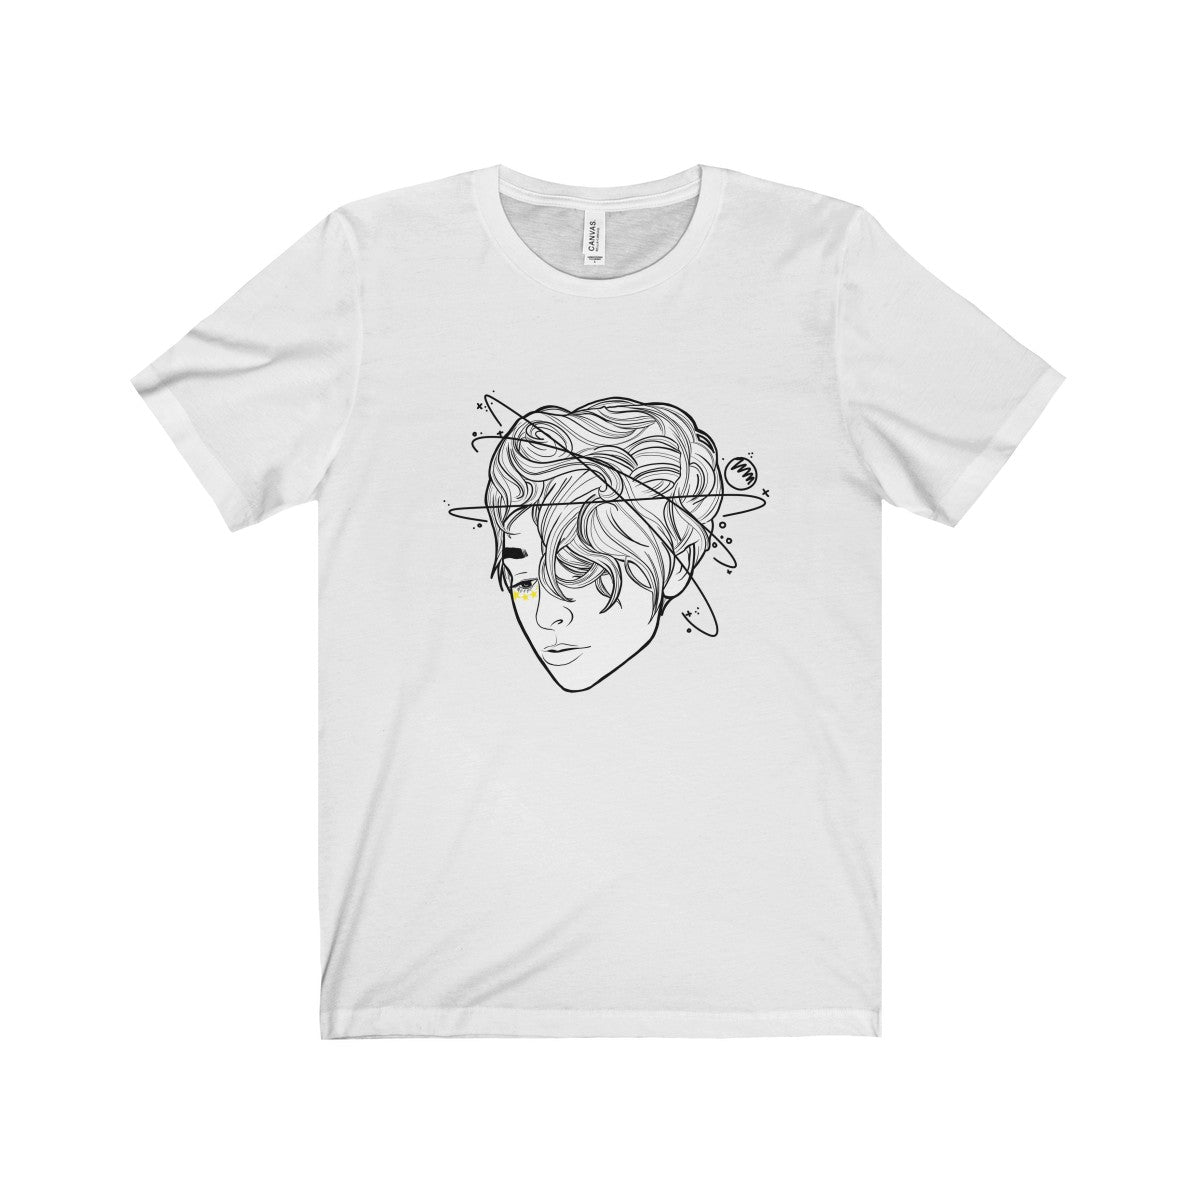 Addison Grace T Shirt